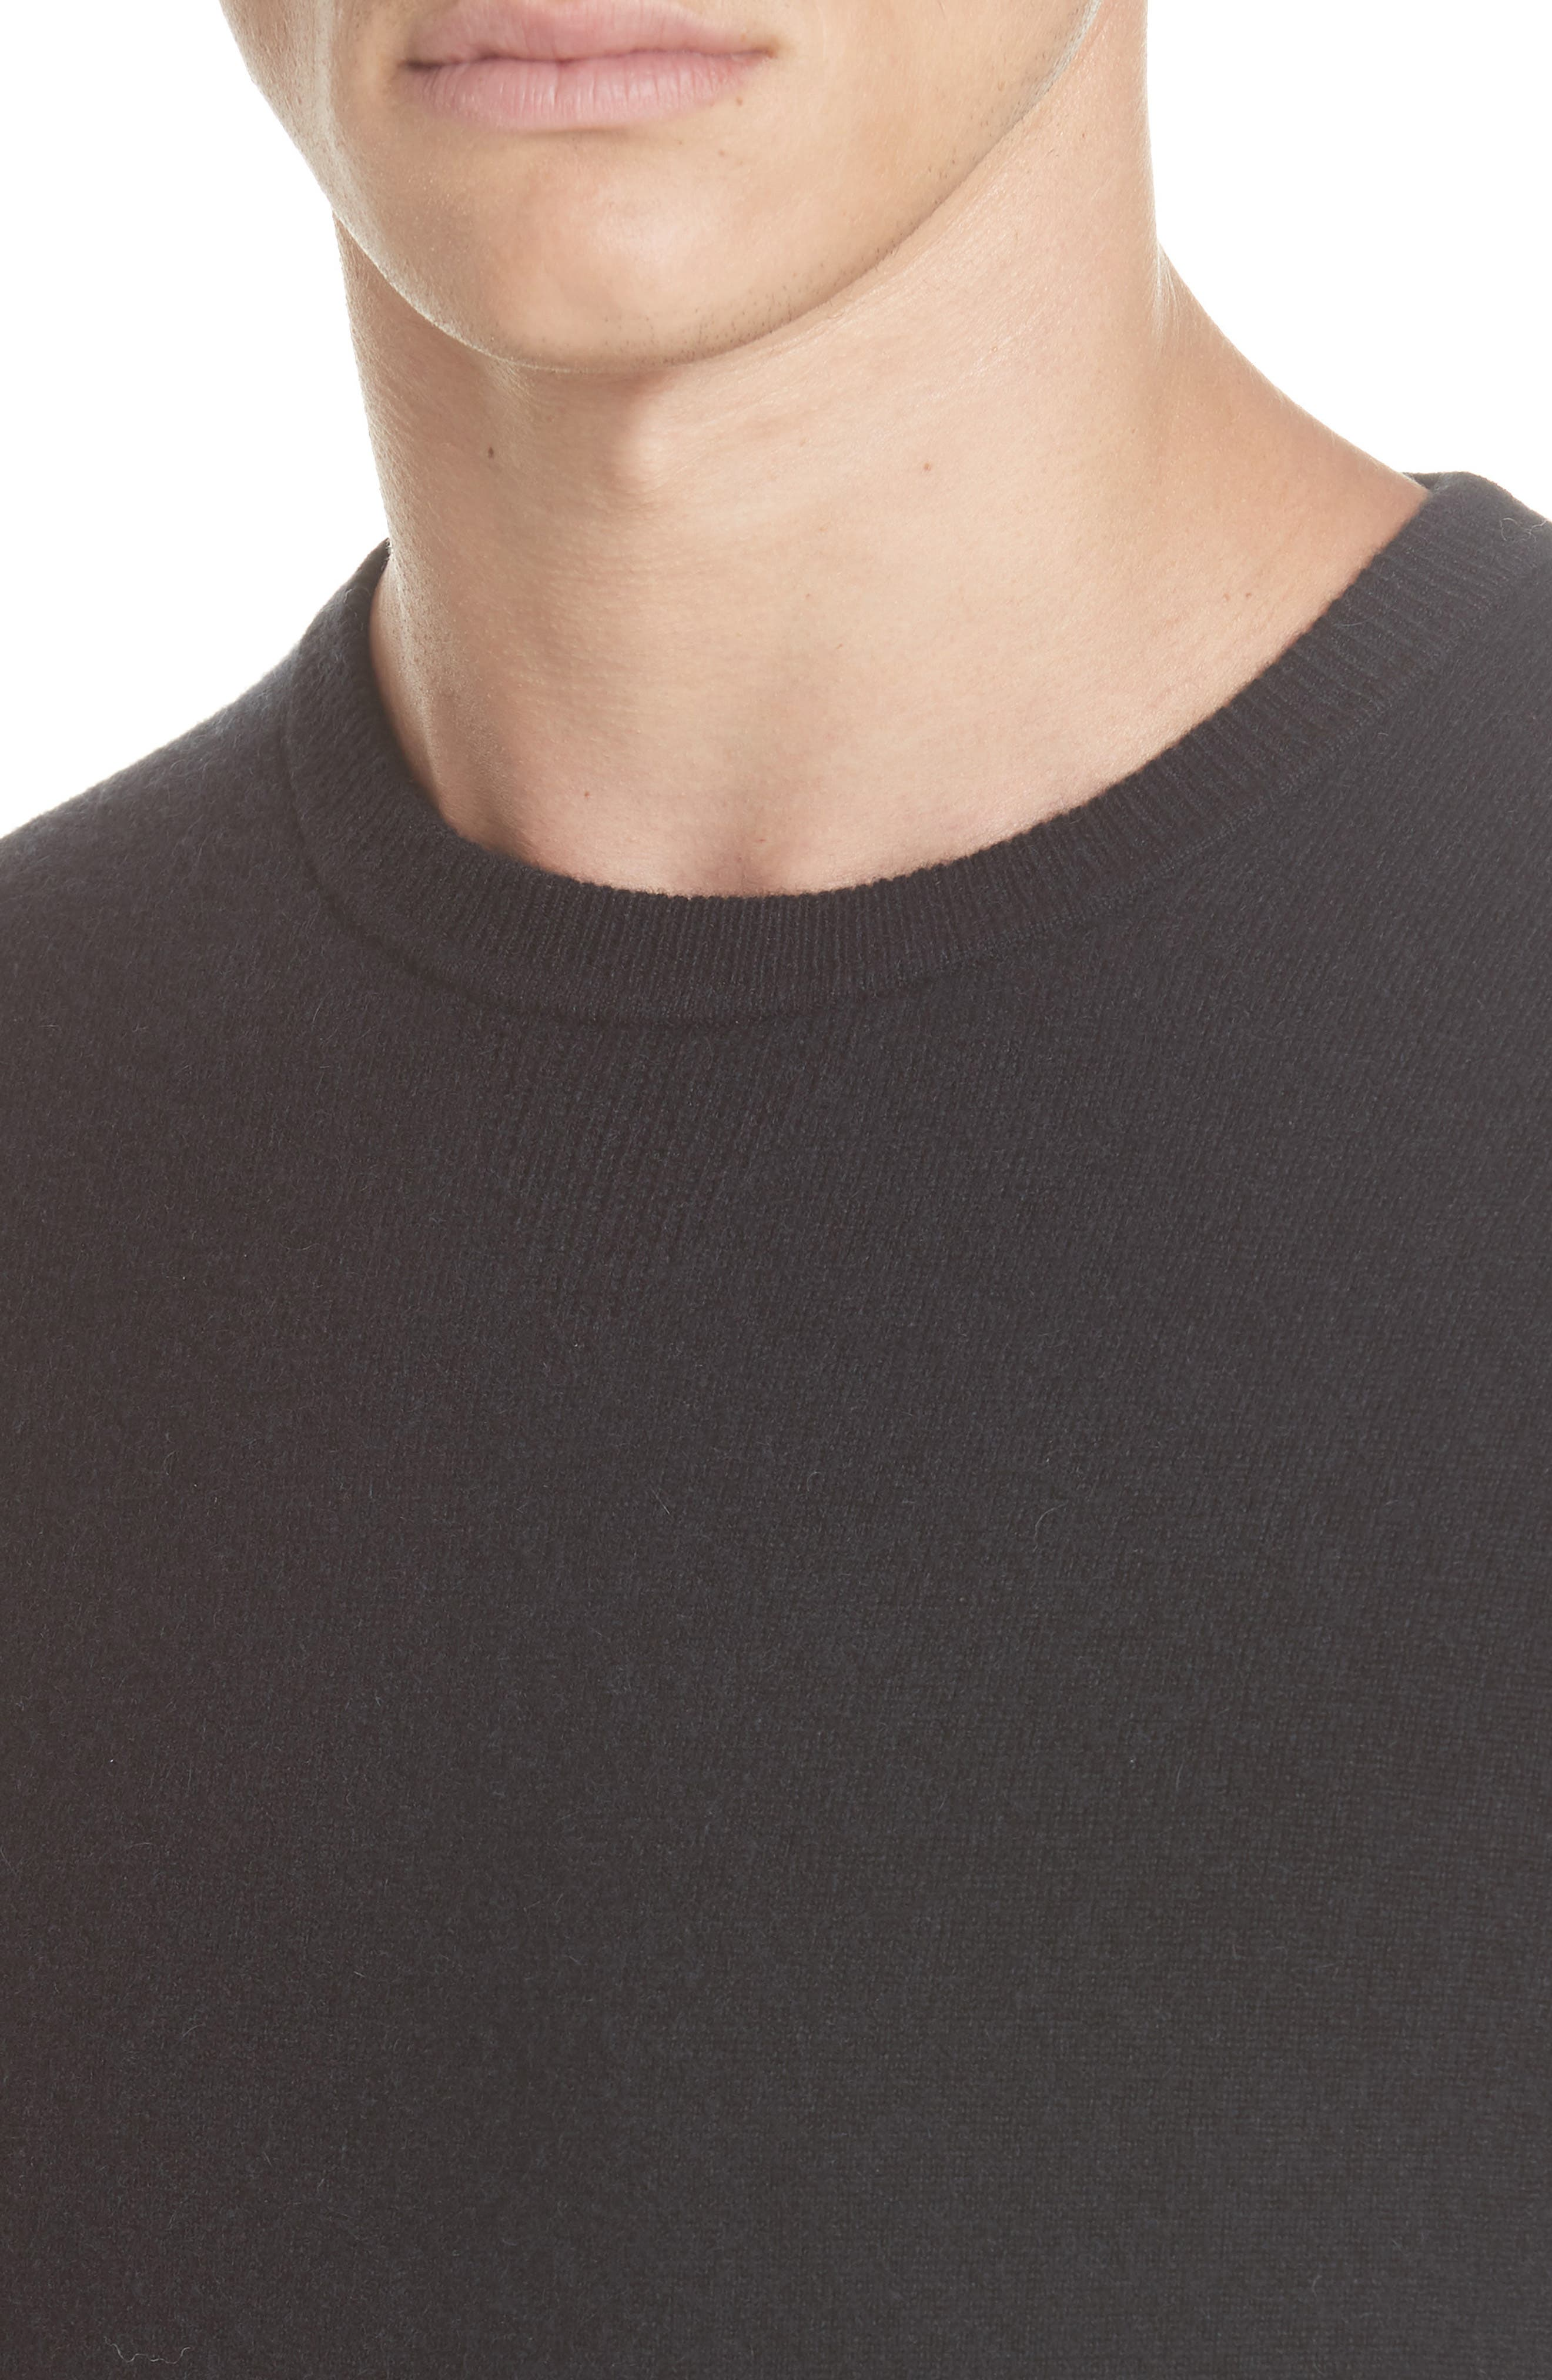 Cashmere Blend Crewneck Sweater,                             Alternate thumbnail 4, color,                             BLACK